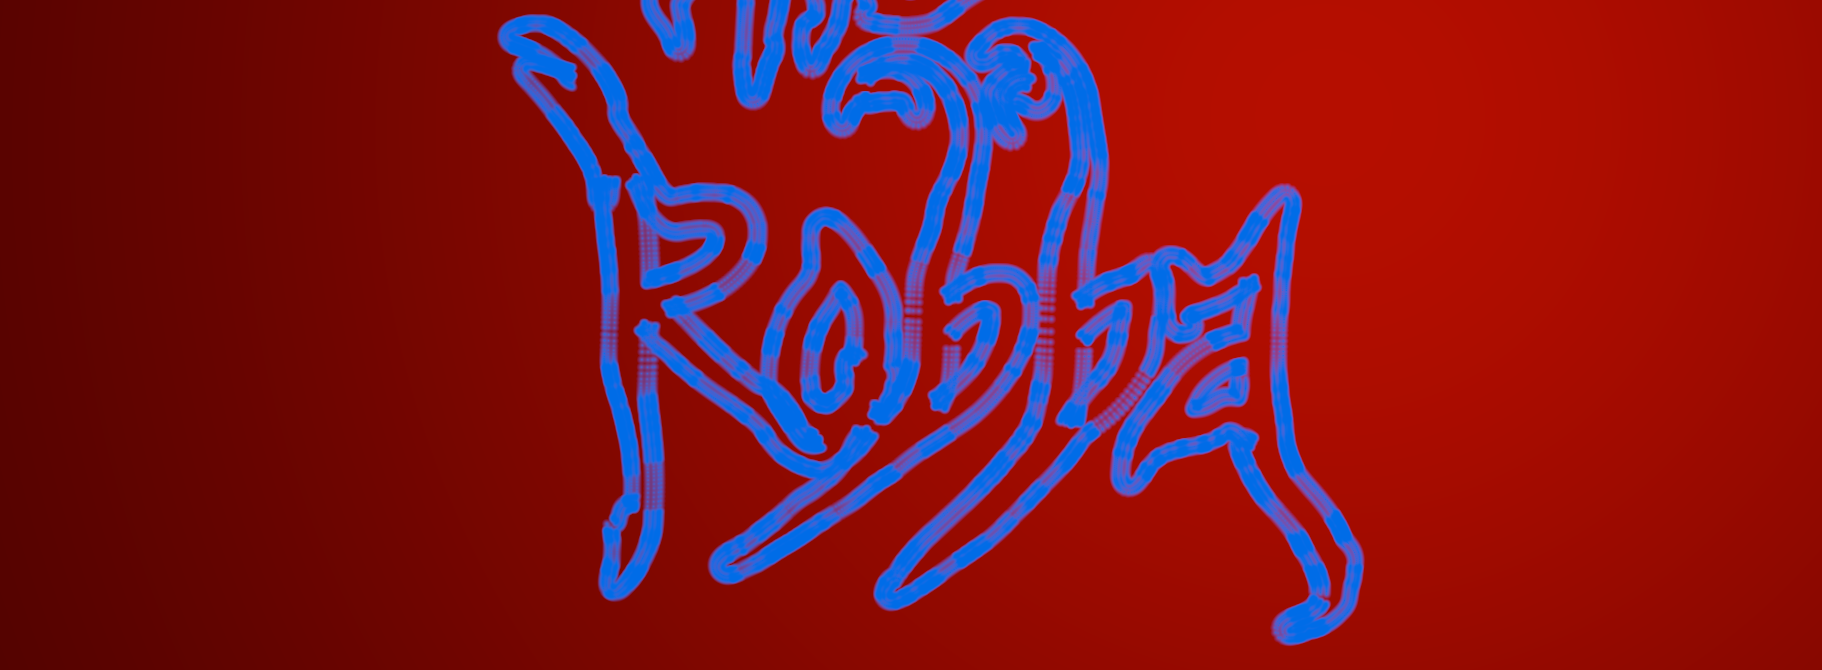 The_robba_logo_paint_on_red0001